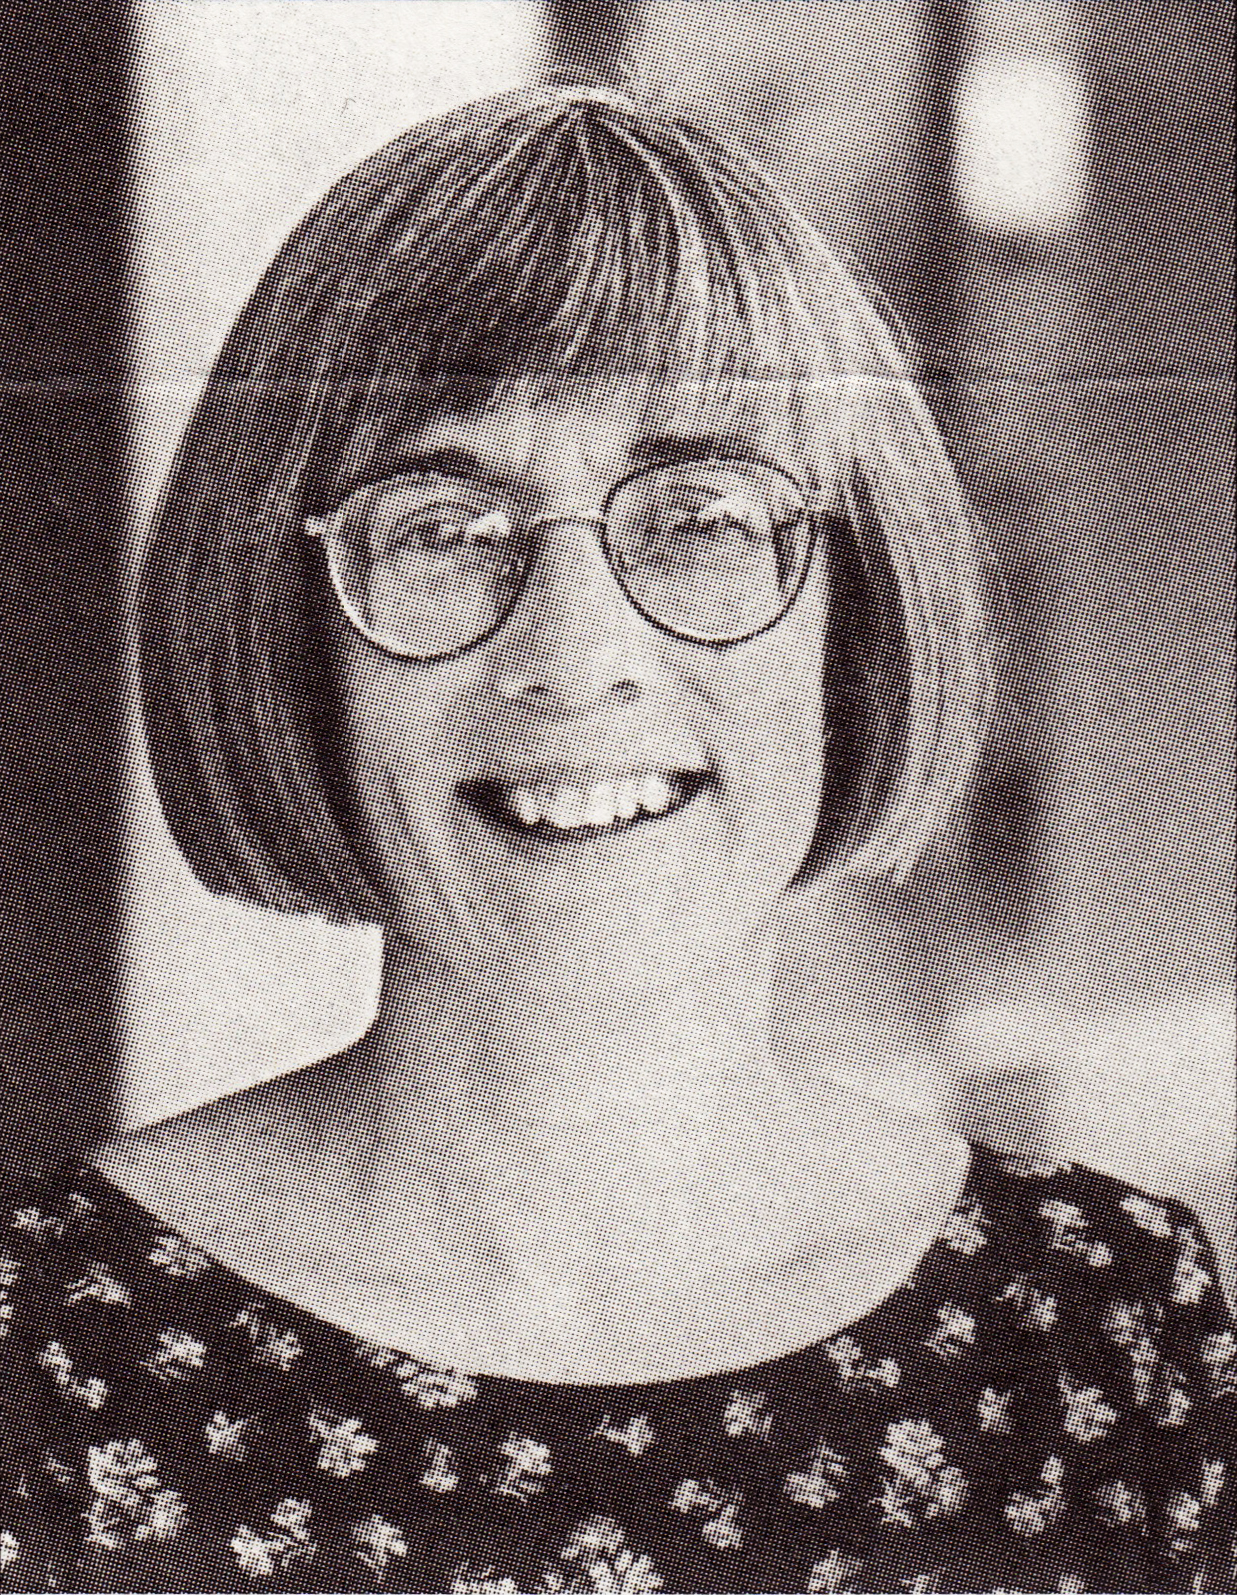 Professor Anne Coughlin in simpler, less fashionable times. From the  Law Weekly's  issue of 10/31/1997.